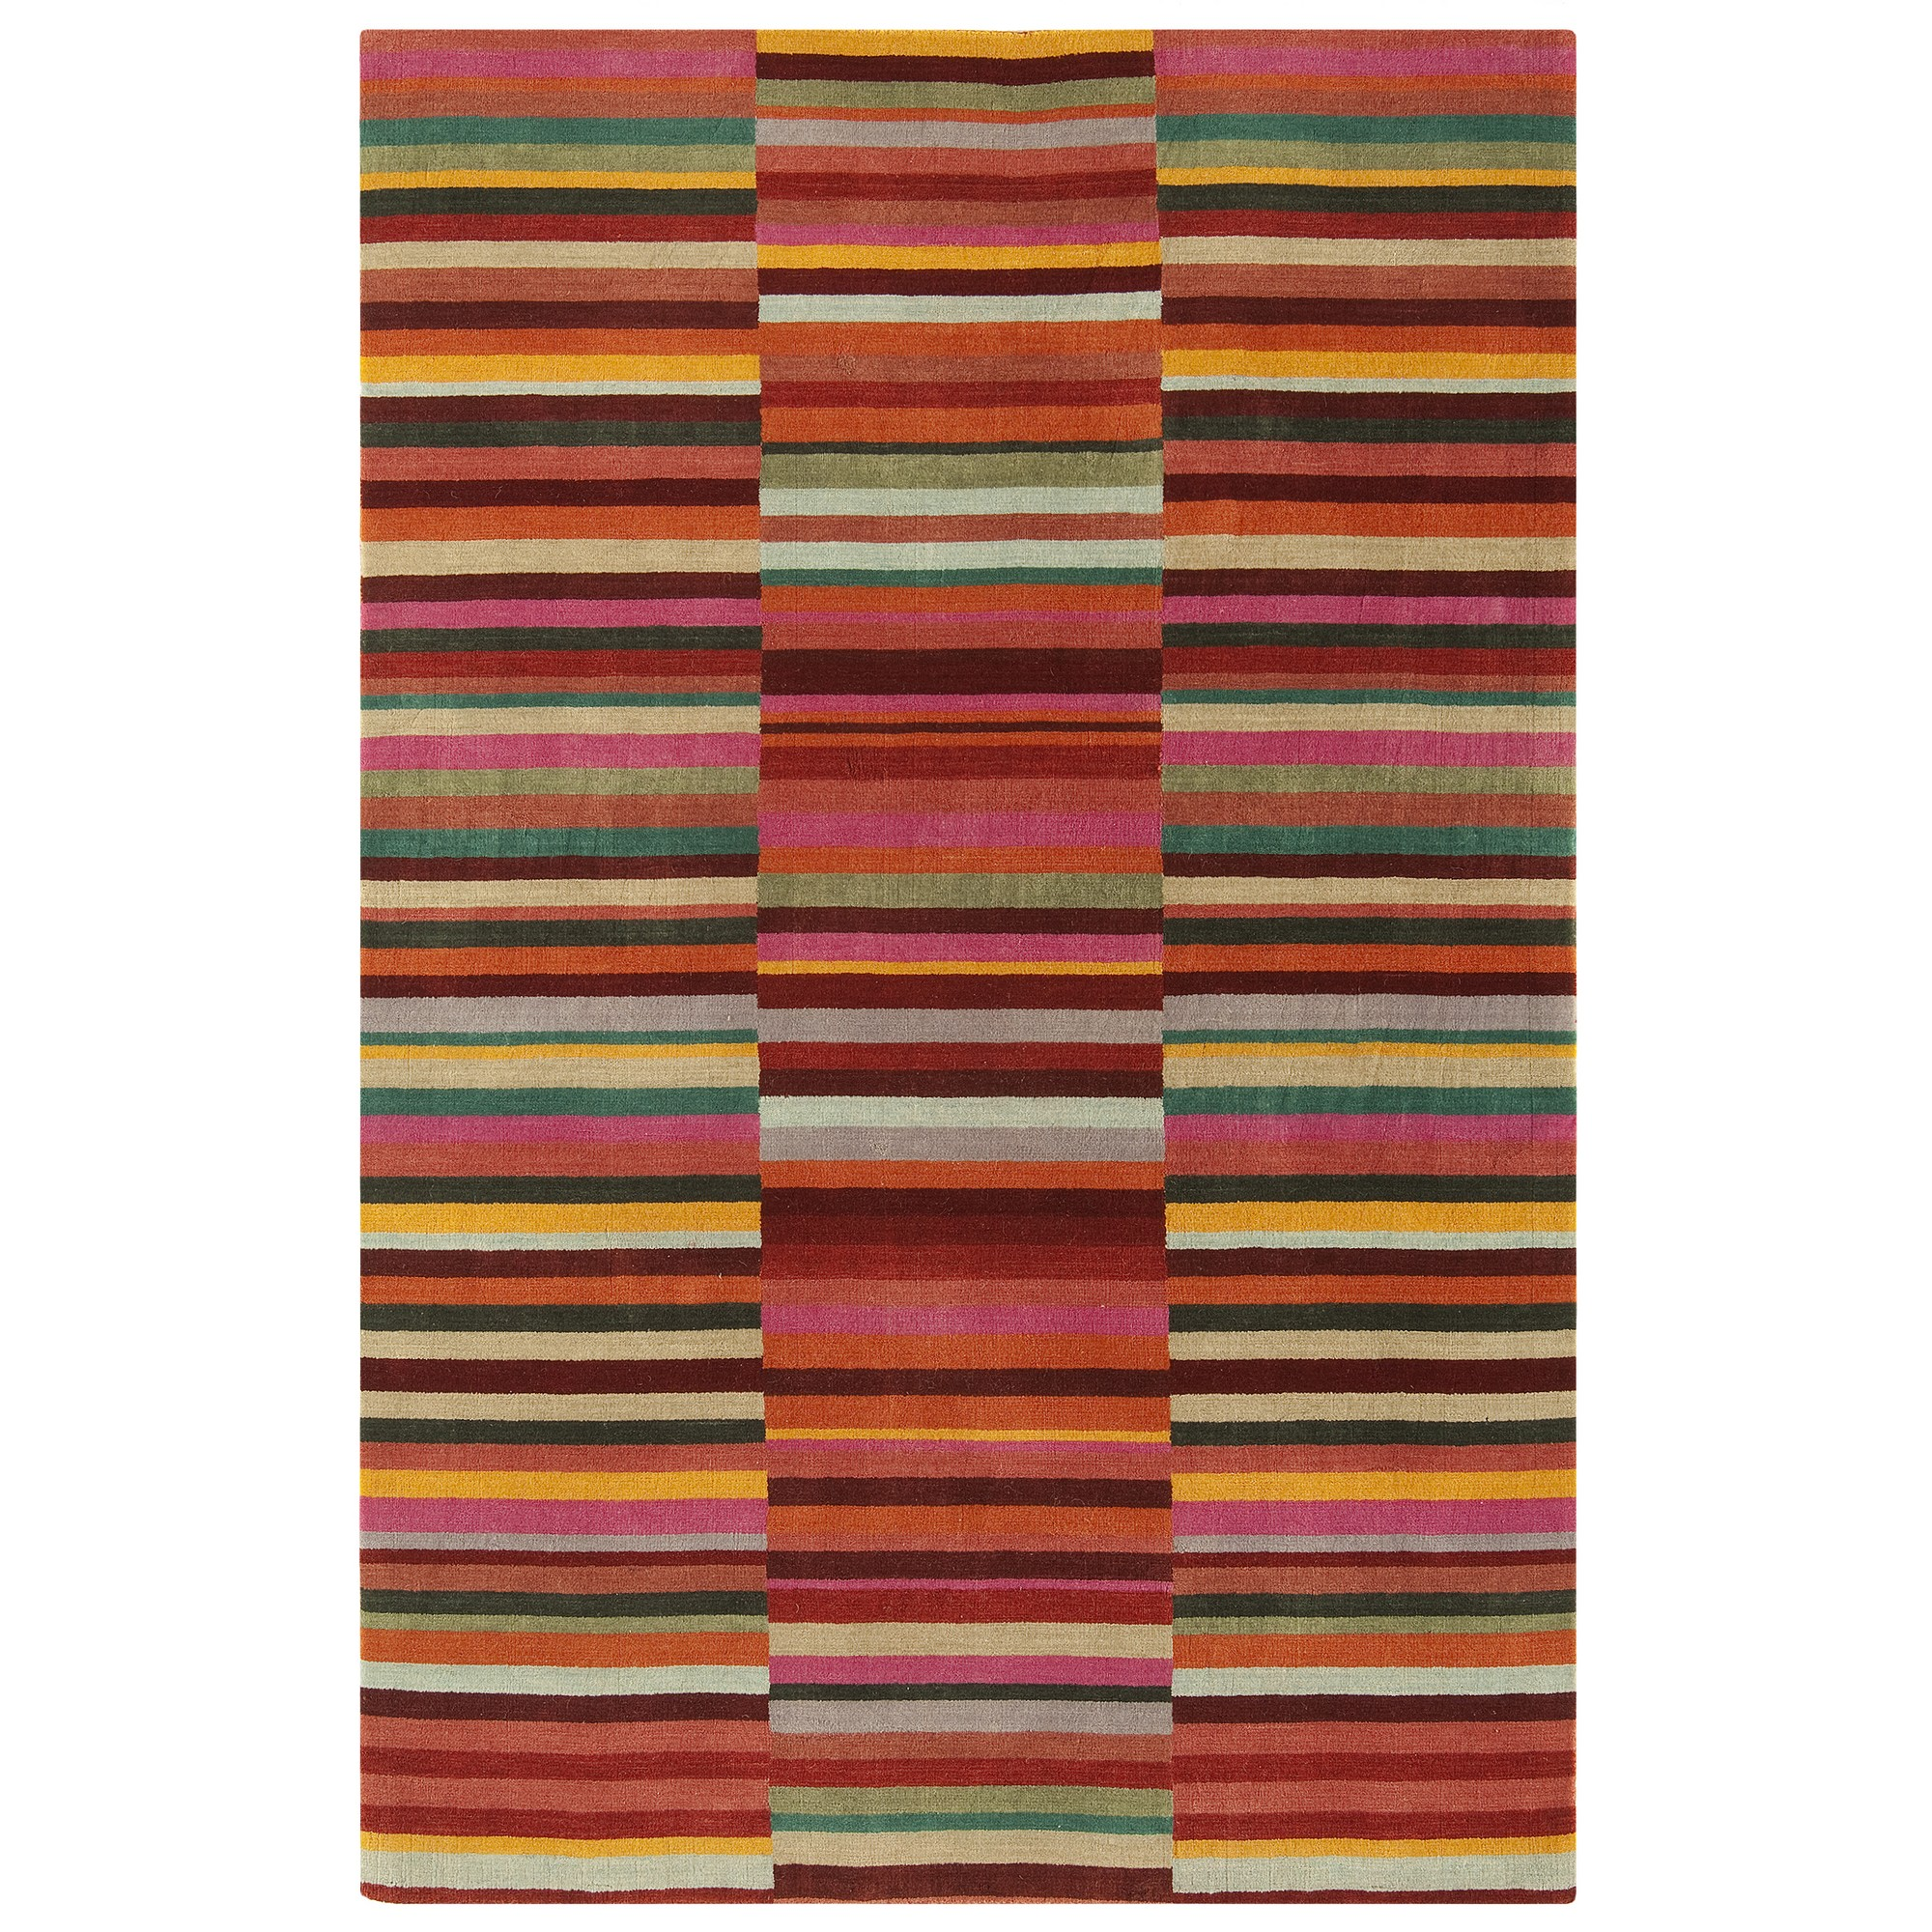 Jacob Rugs in Red Multi